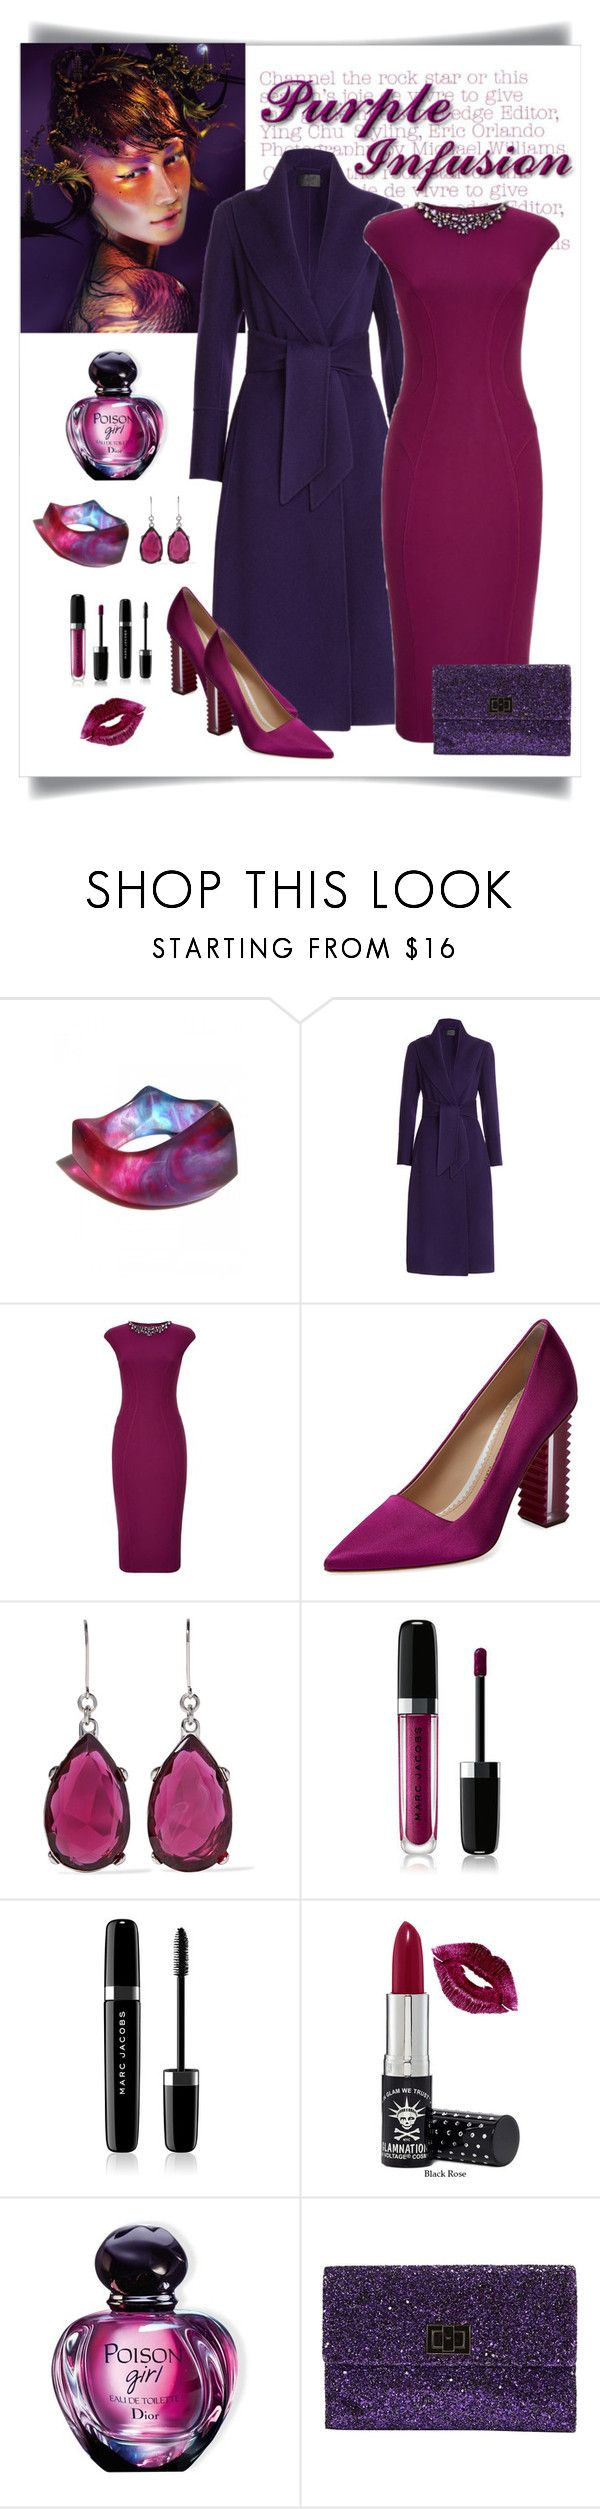 """""""Ted Baker Dardee Embellished Dress Look"""" by romaboots-1 ❤ liked on Polyvore featuring Shanka, Donna Karan, Ted Baker, Aperlaï, Kenneth Jay Lane, Marc Jacobs, Manic Panic NYC, Christian Dior and Anya Hindmarch"""